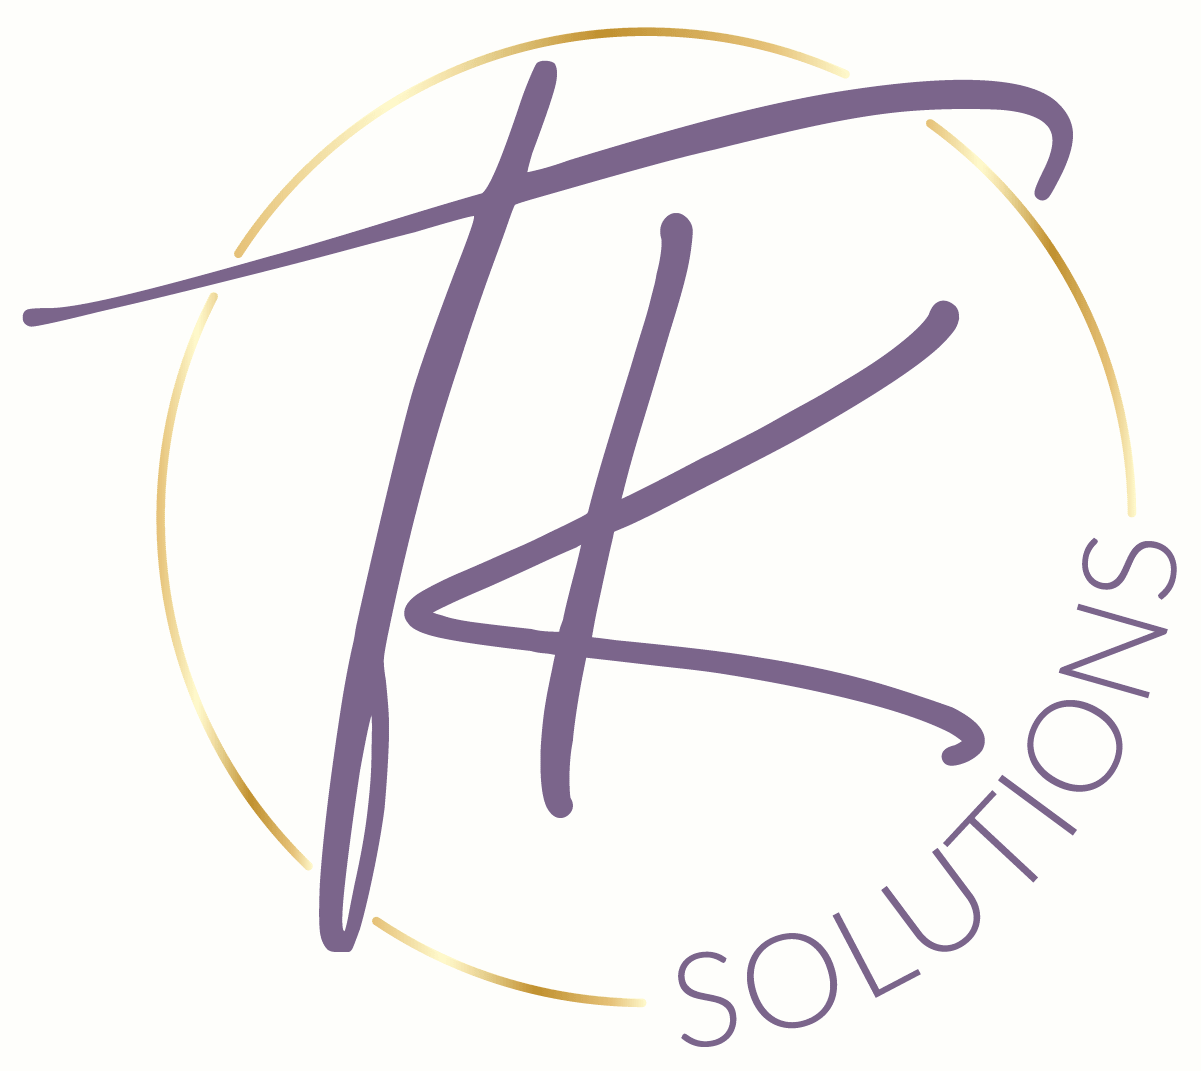 strategic accounting solutions tk solutions logo with purple letters and gold foil circle